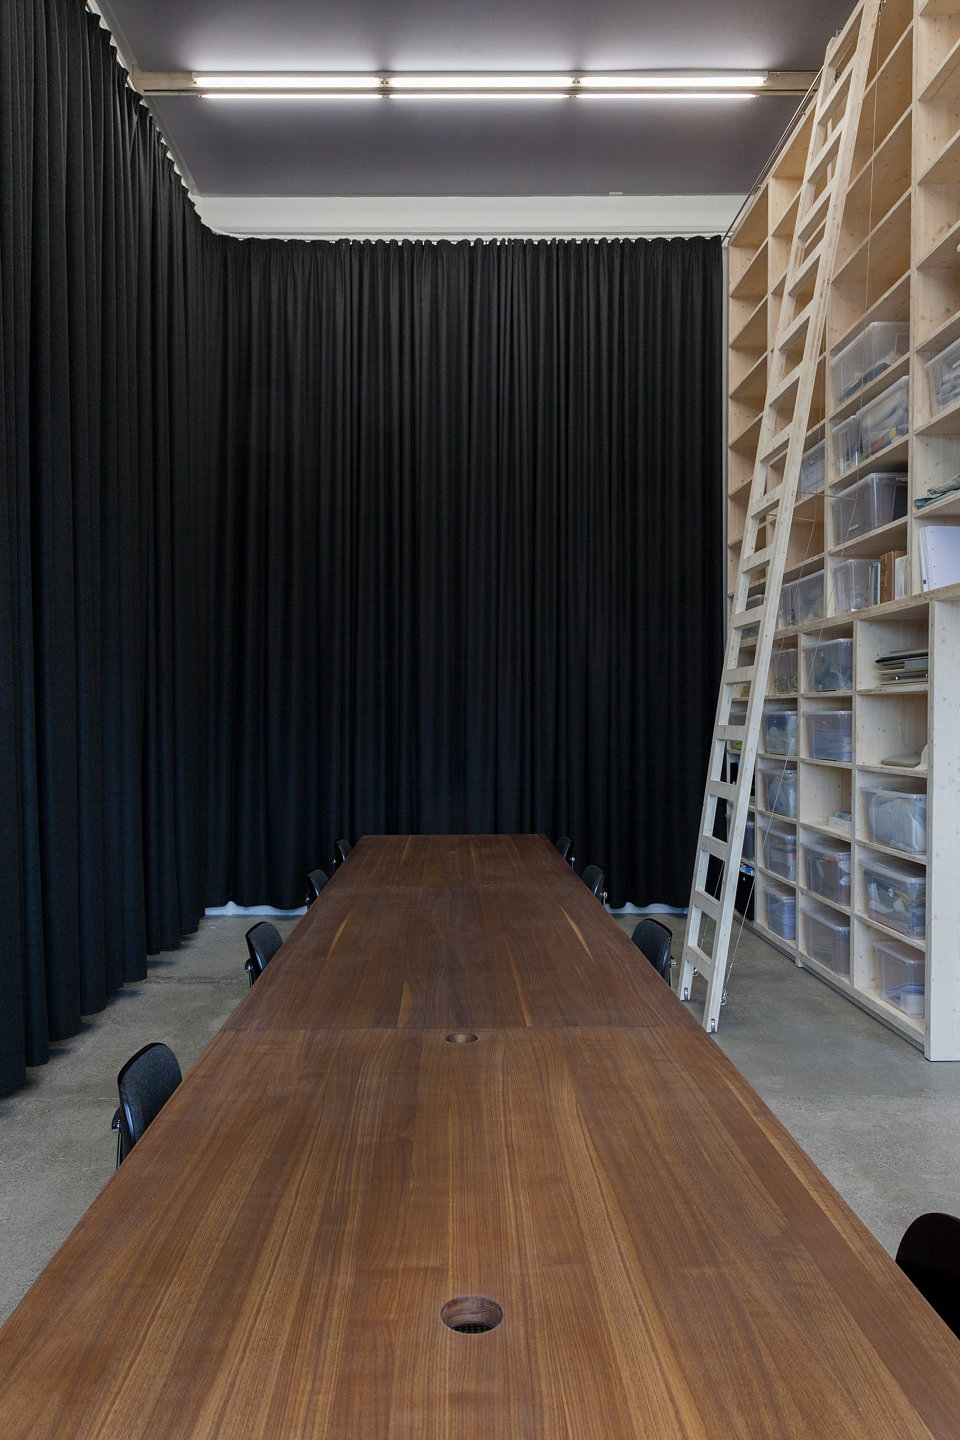 Japanese Classroom Design ~ Caruso st john refurbishes kvadrat soft cells design studio